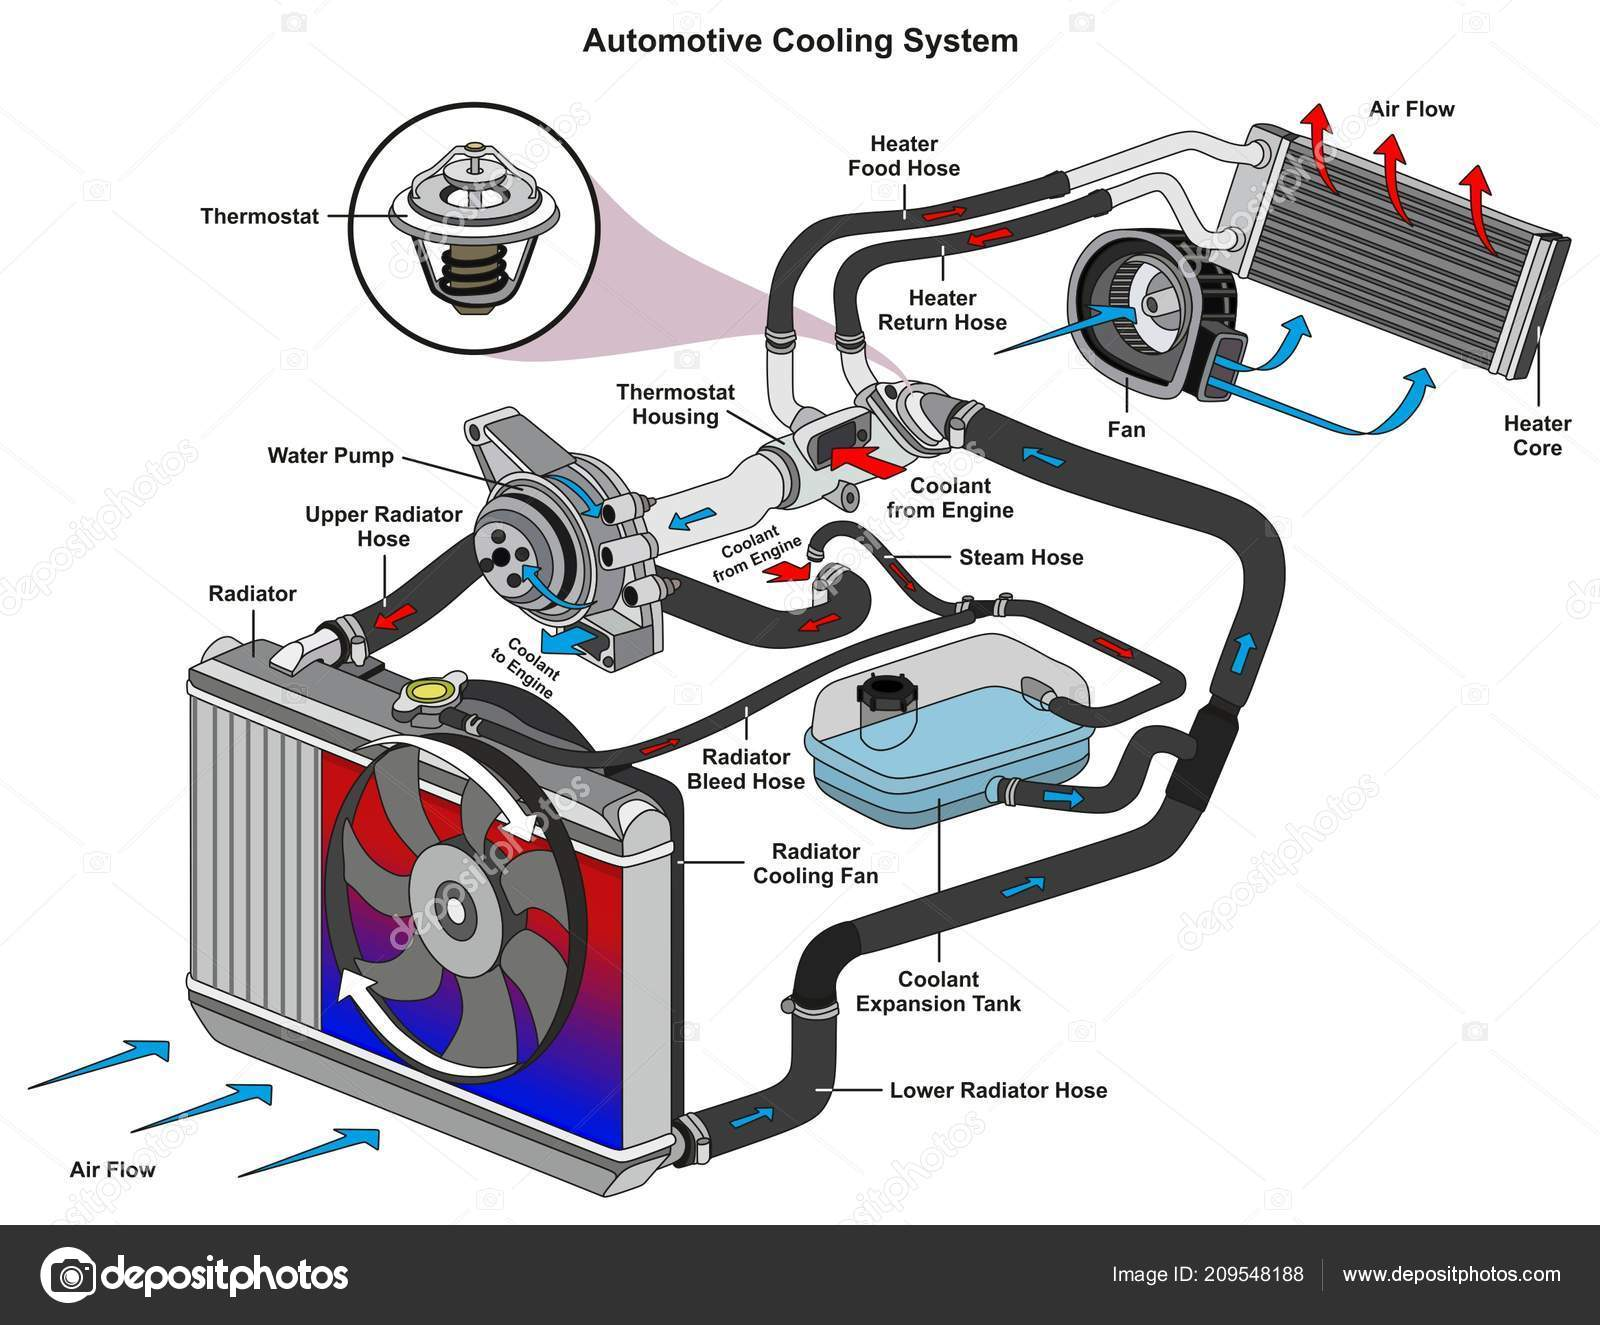 automotive cooling system infographic diagram showing process allautomotive cooling system infographic diagram showing process all parts included \u2014 stock vector